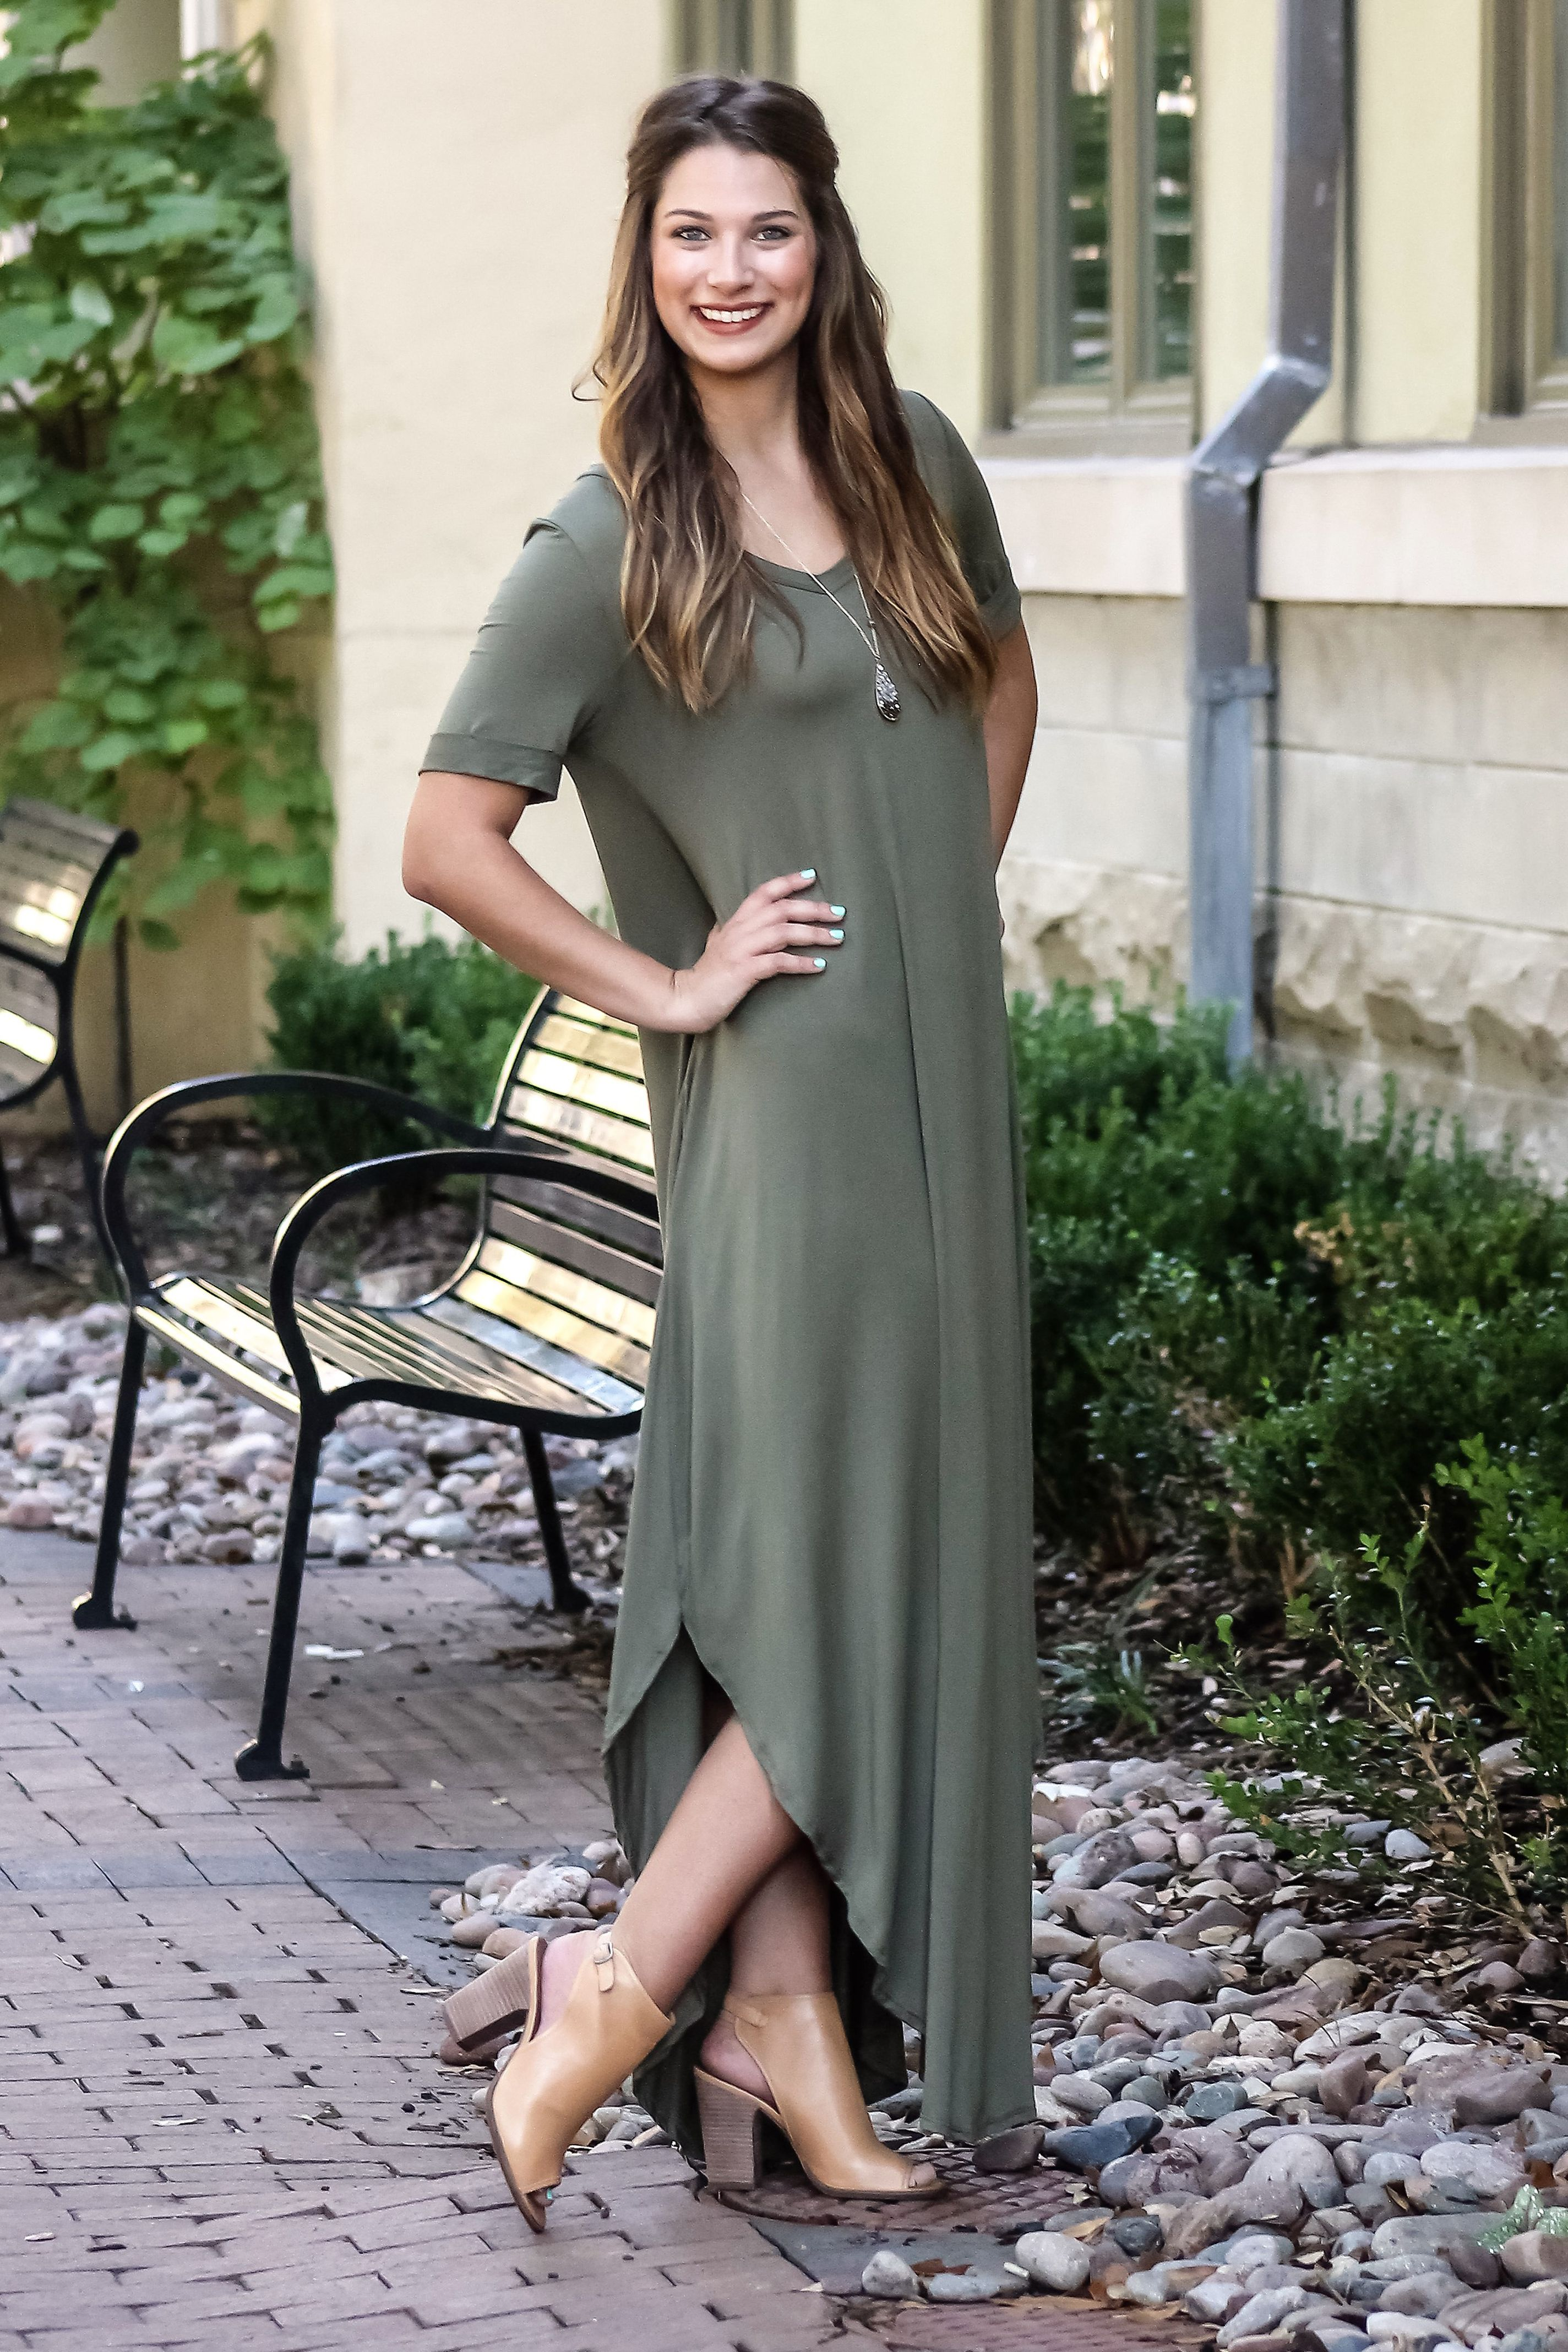 How to keep warm in a maxi dress